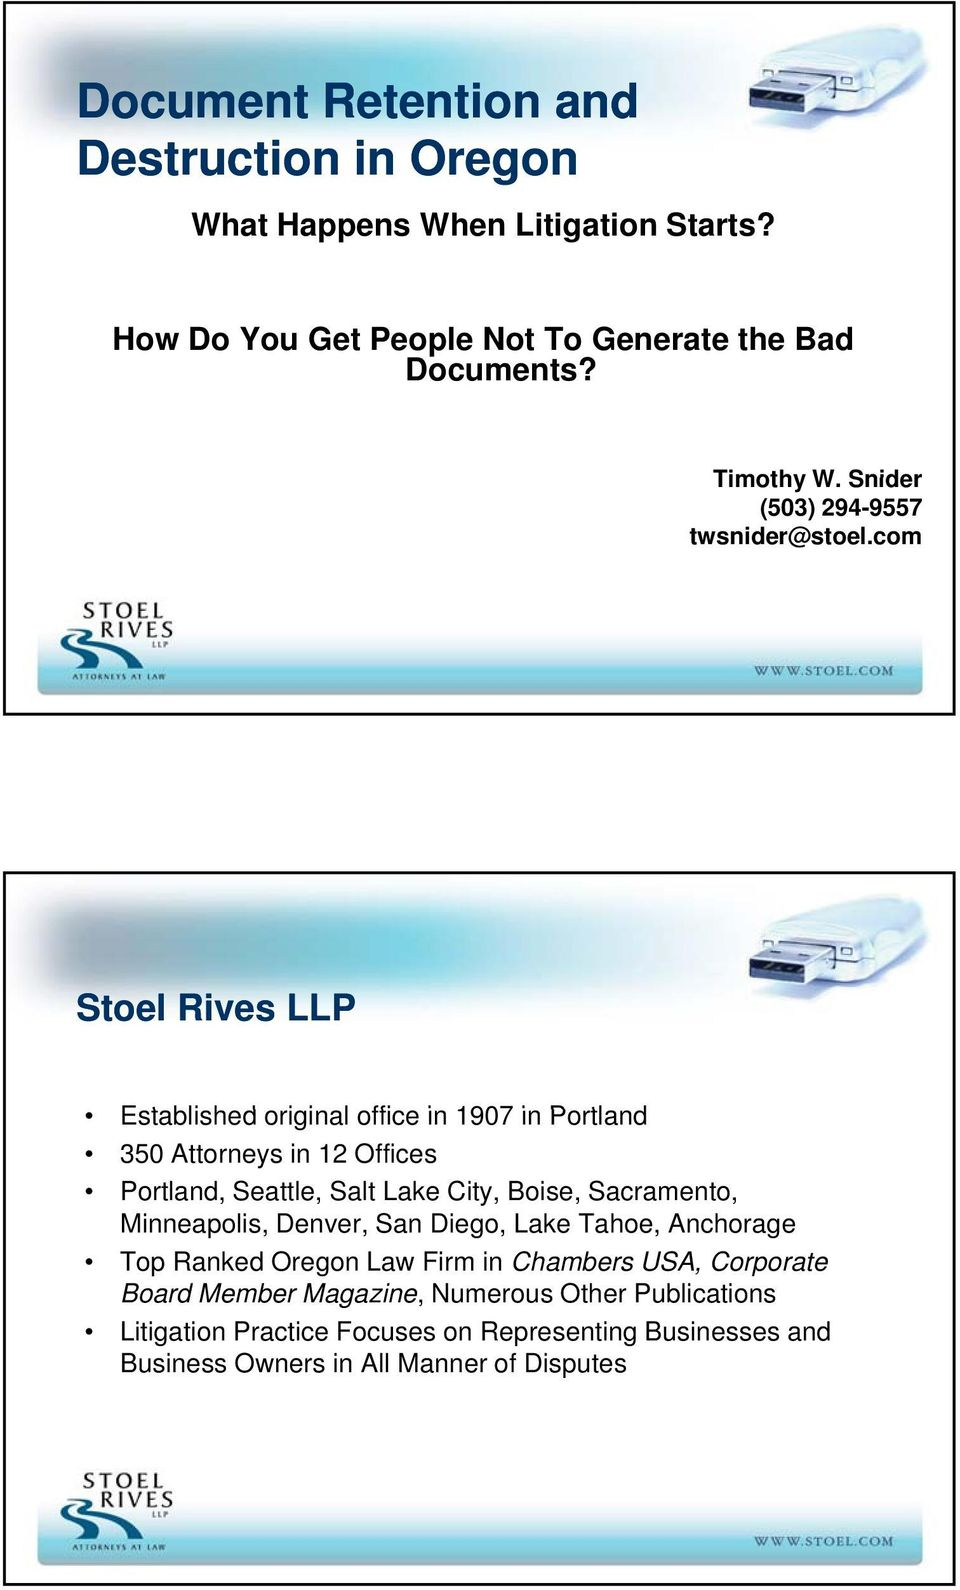 com Stoel Rives LLP E t bli h d i i l ffi i 1907 i P tl d Established original office in 1907 in Portland 350 Attorneys in 12 Offices Portland, Seattle, Salt